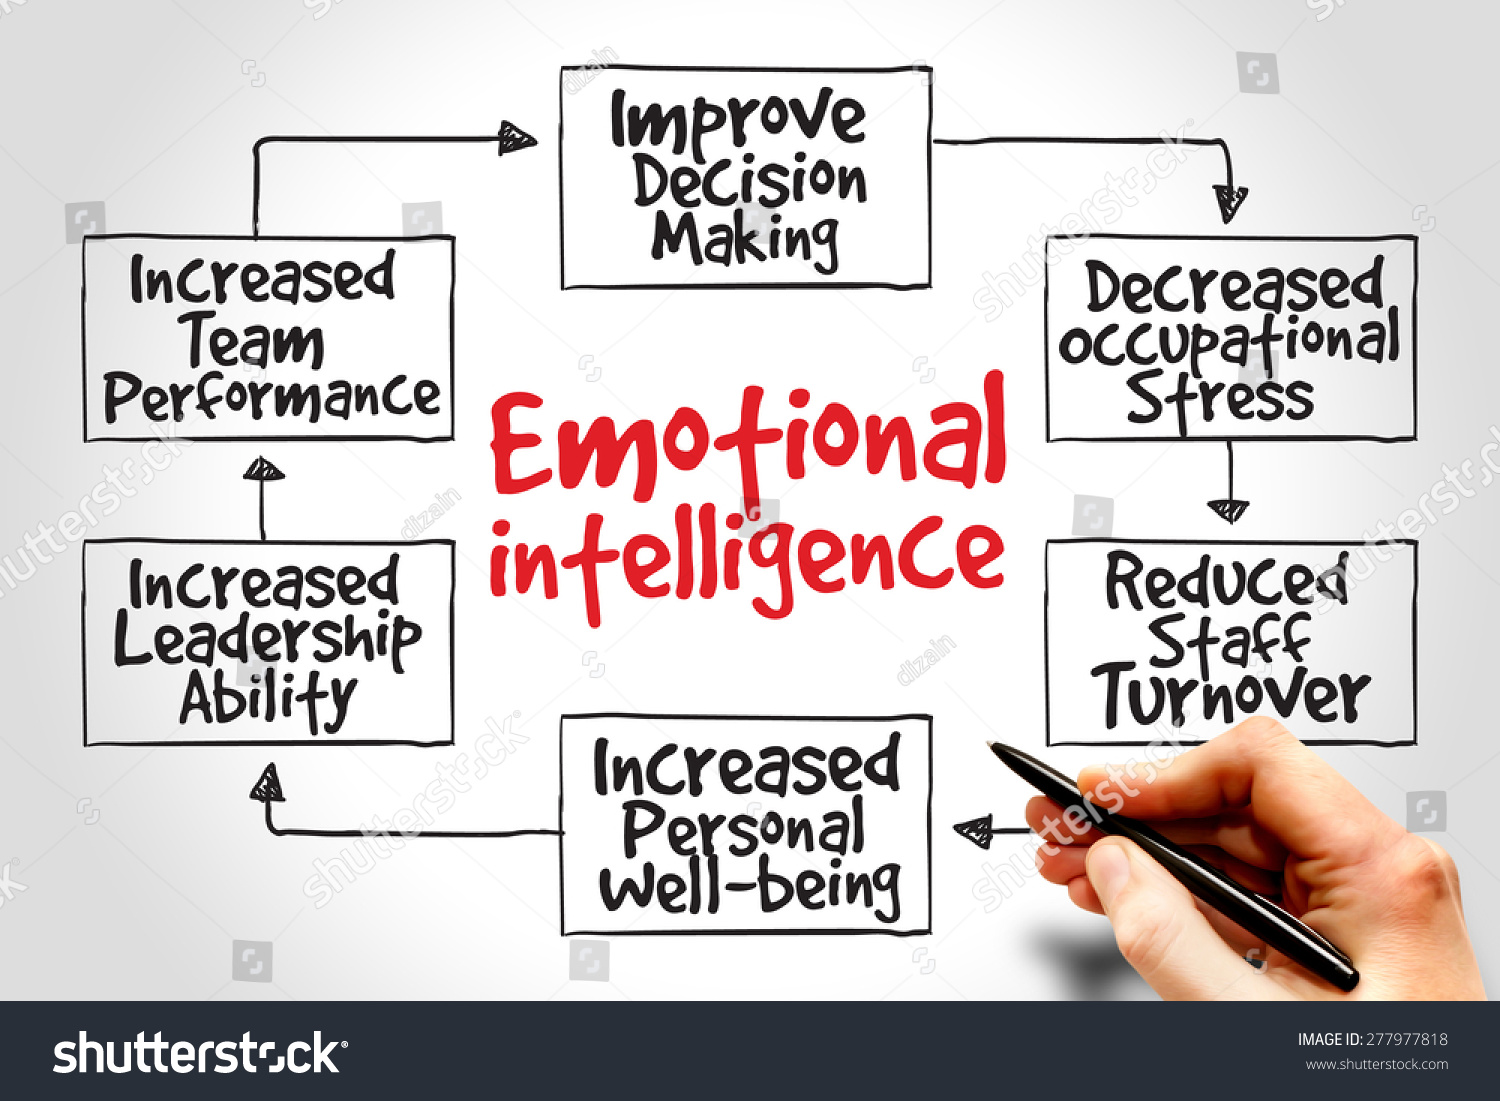 an introduction to the concept of emotional intelligence 2015-12-04 19 1997 wessinger, 1998) and of the scientific researchers (eg davies, et al, 1998 mayer, caruso, & salovey, 2000 petrides & furnham, 2000, 2001) the concept of emotional intelligence can be traced to the notable.